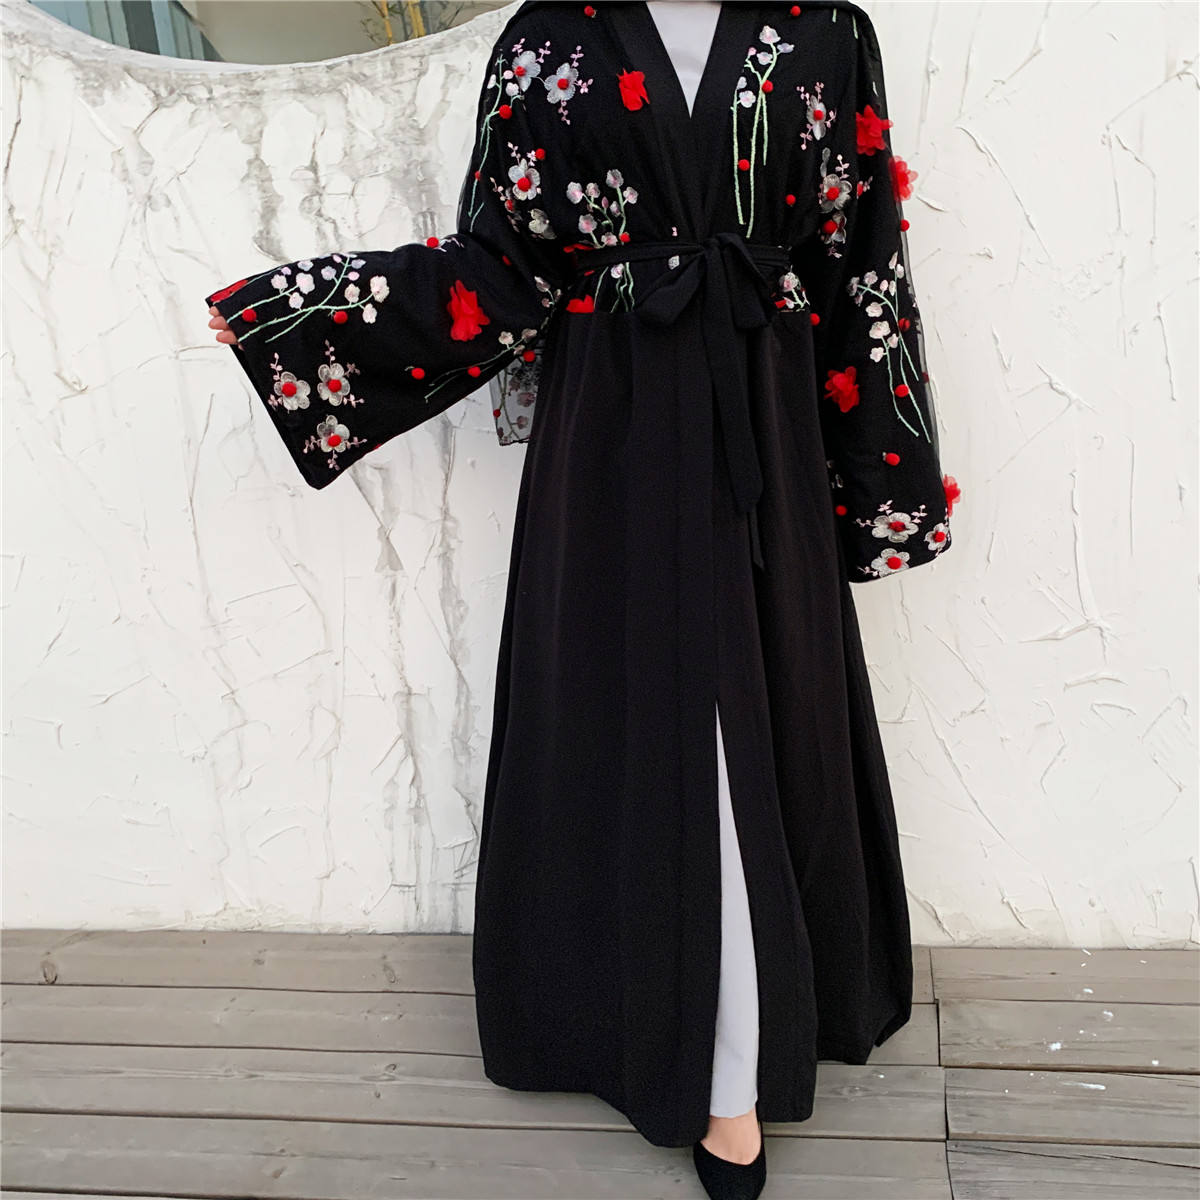 1632# Latest Designs 3D flowers open floral kimono cardigan kaftan hijab new model abaya in dubai